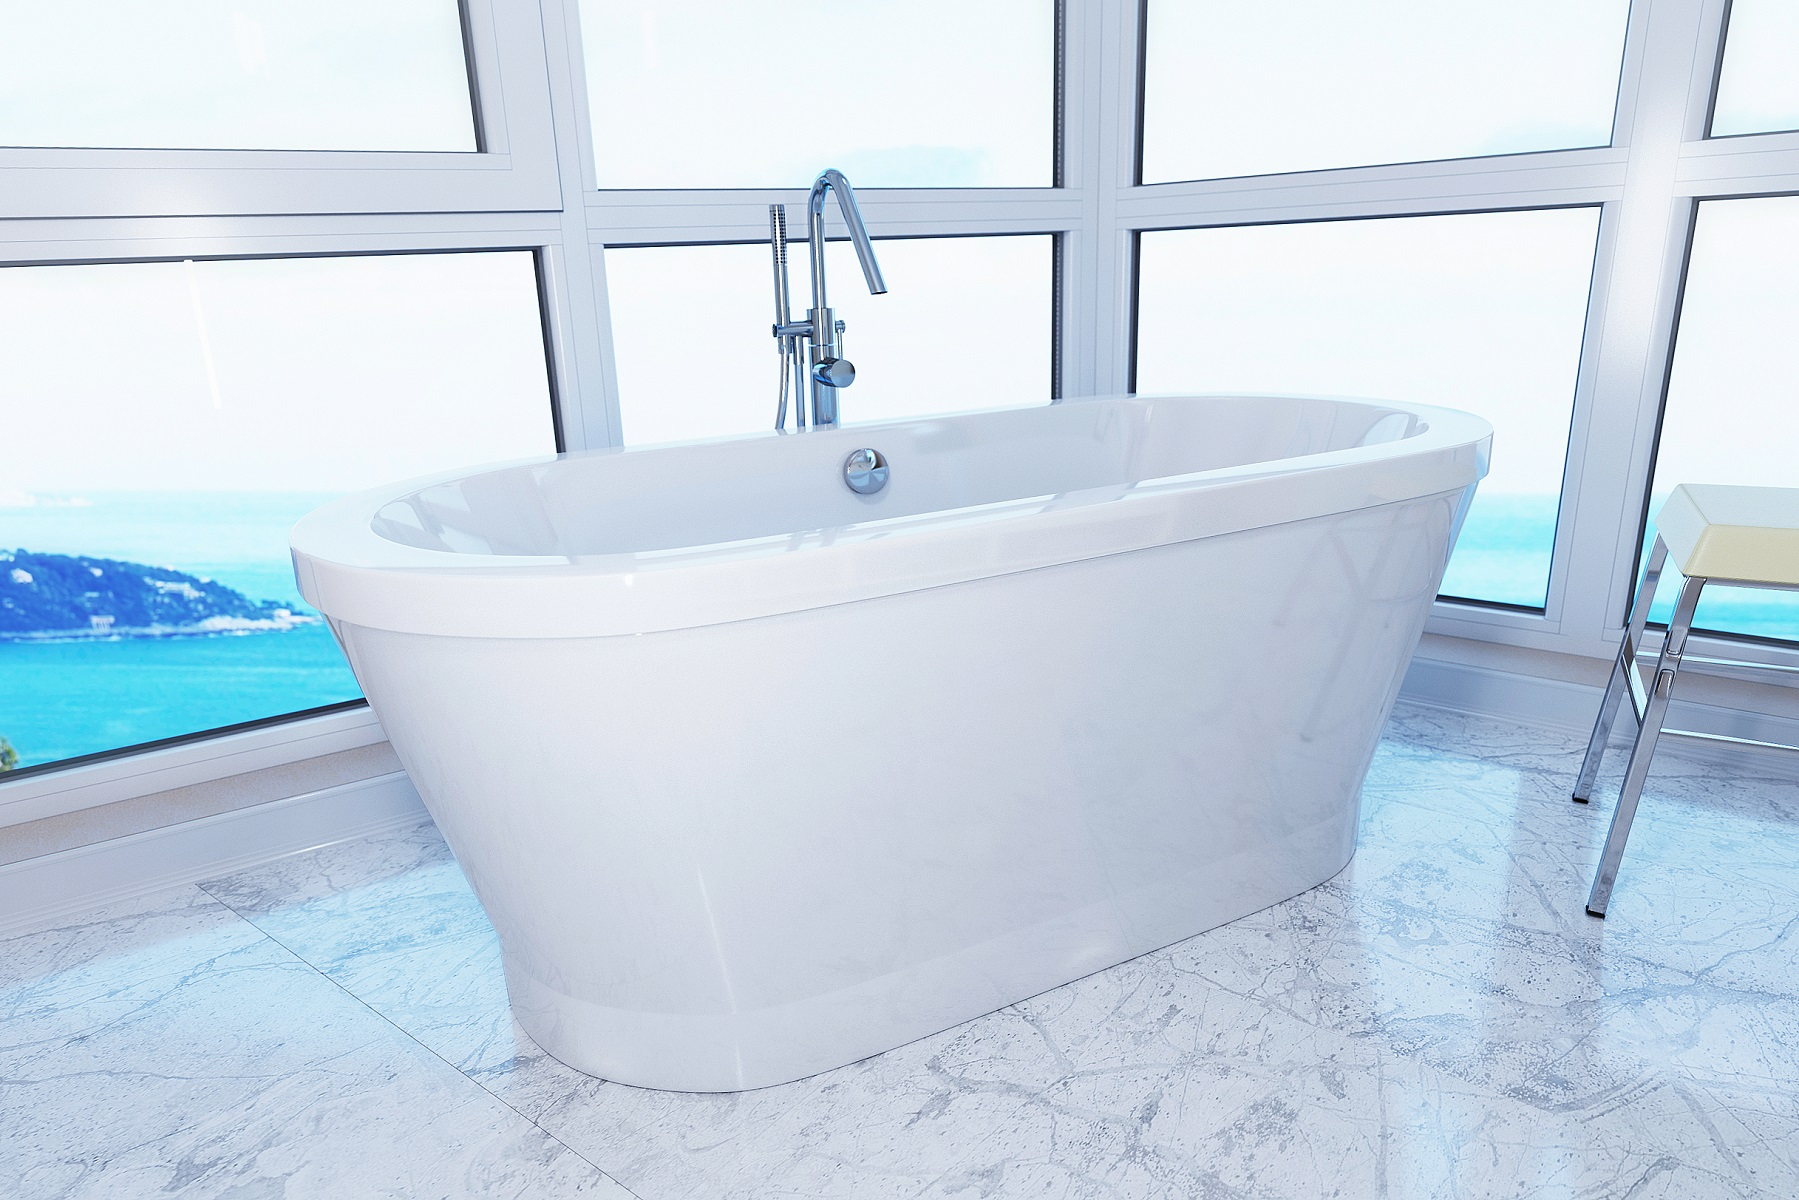 Freestanding Acrylic Bathtub Reviews - Bathtub Ideas